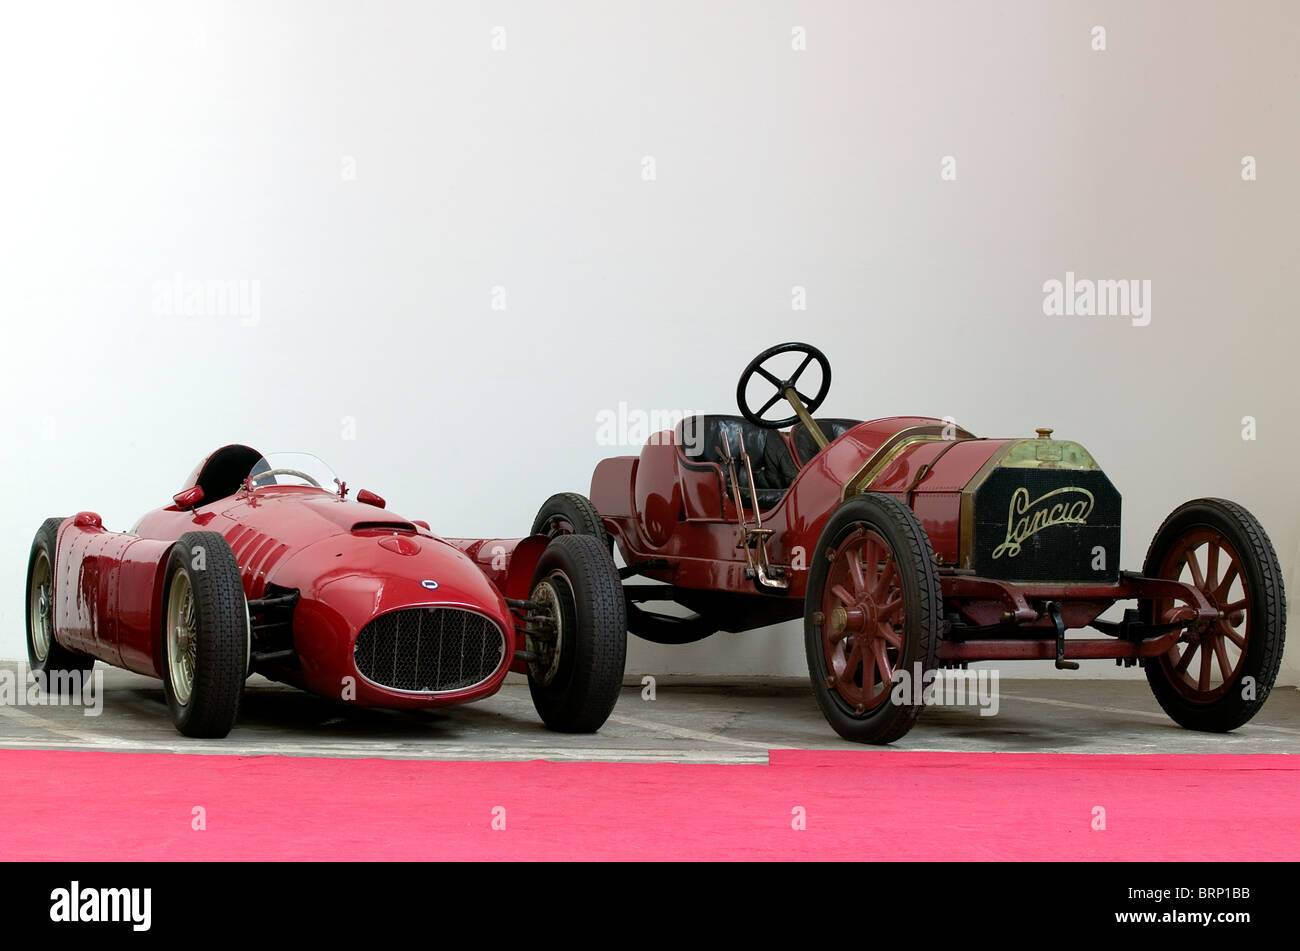 Lancia racing cars in the Museum in Turin - Stock Image